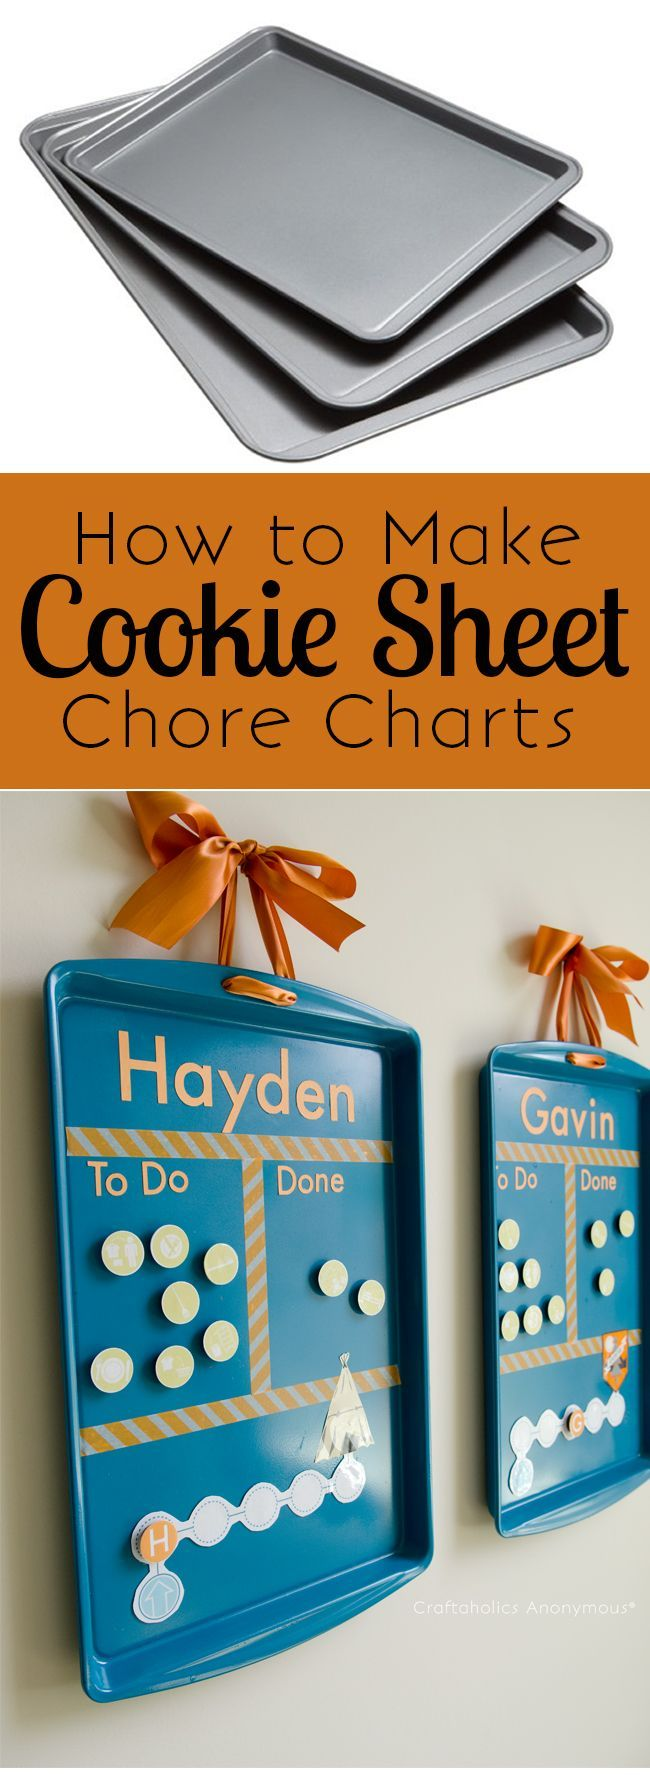 How to make Cookie Sheet Chore Charts. Cheap + easy to make. Love the magnet idea! #DIY #Organization